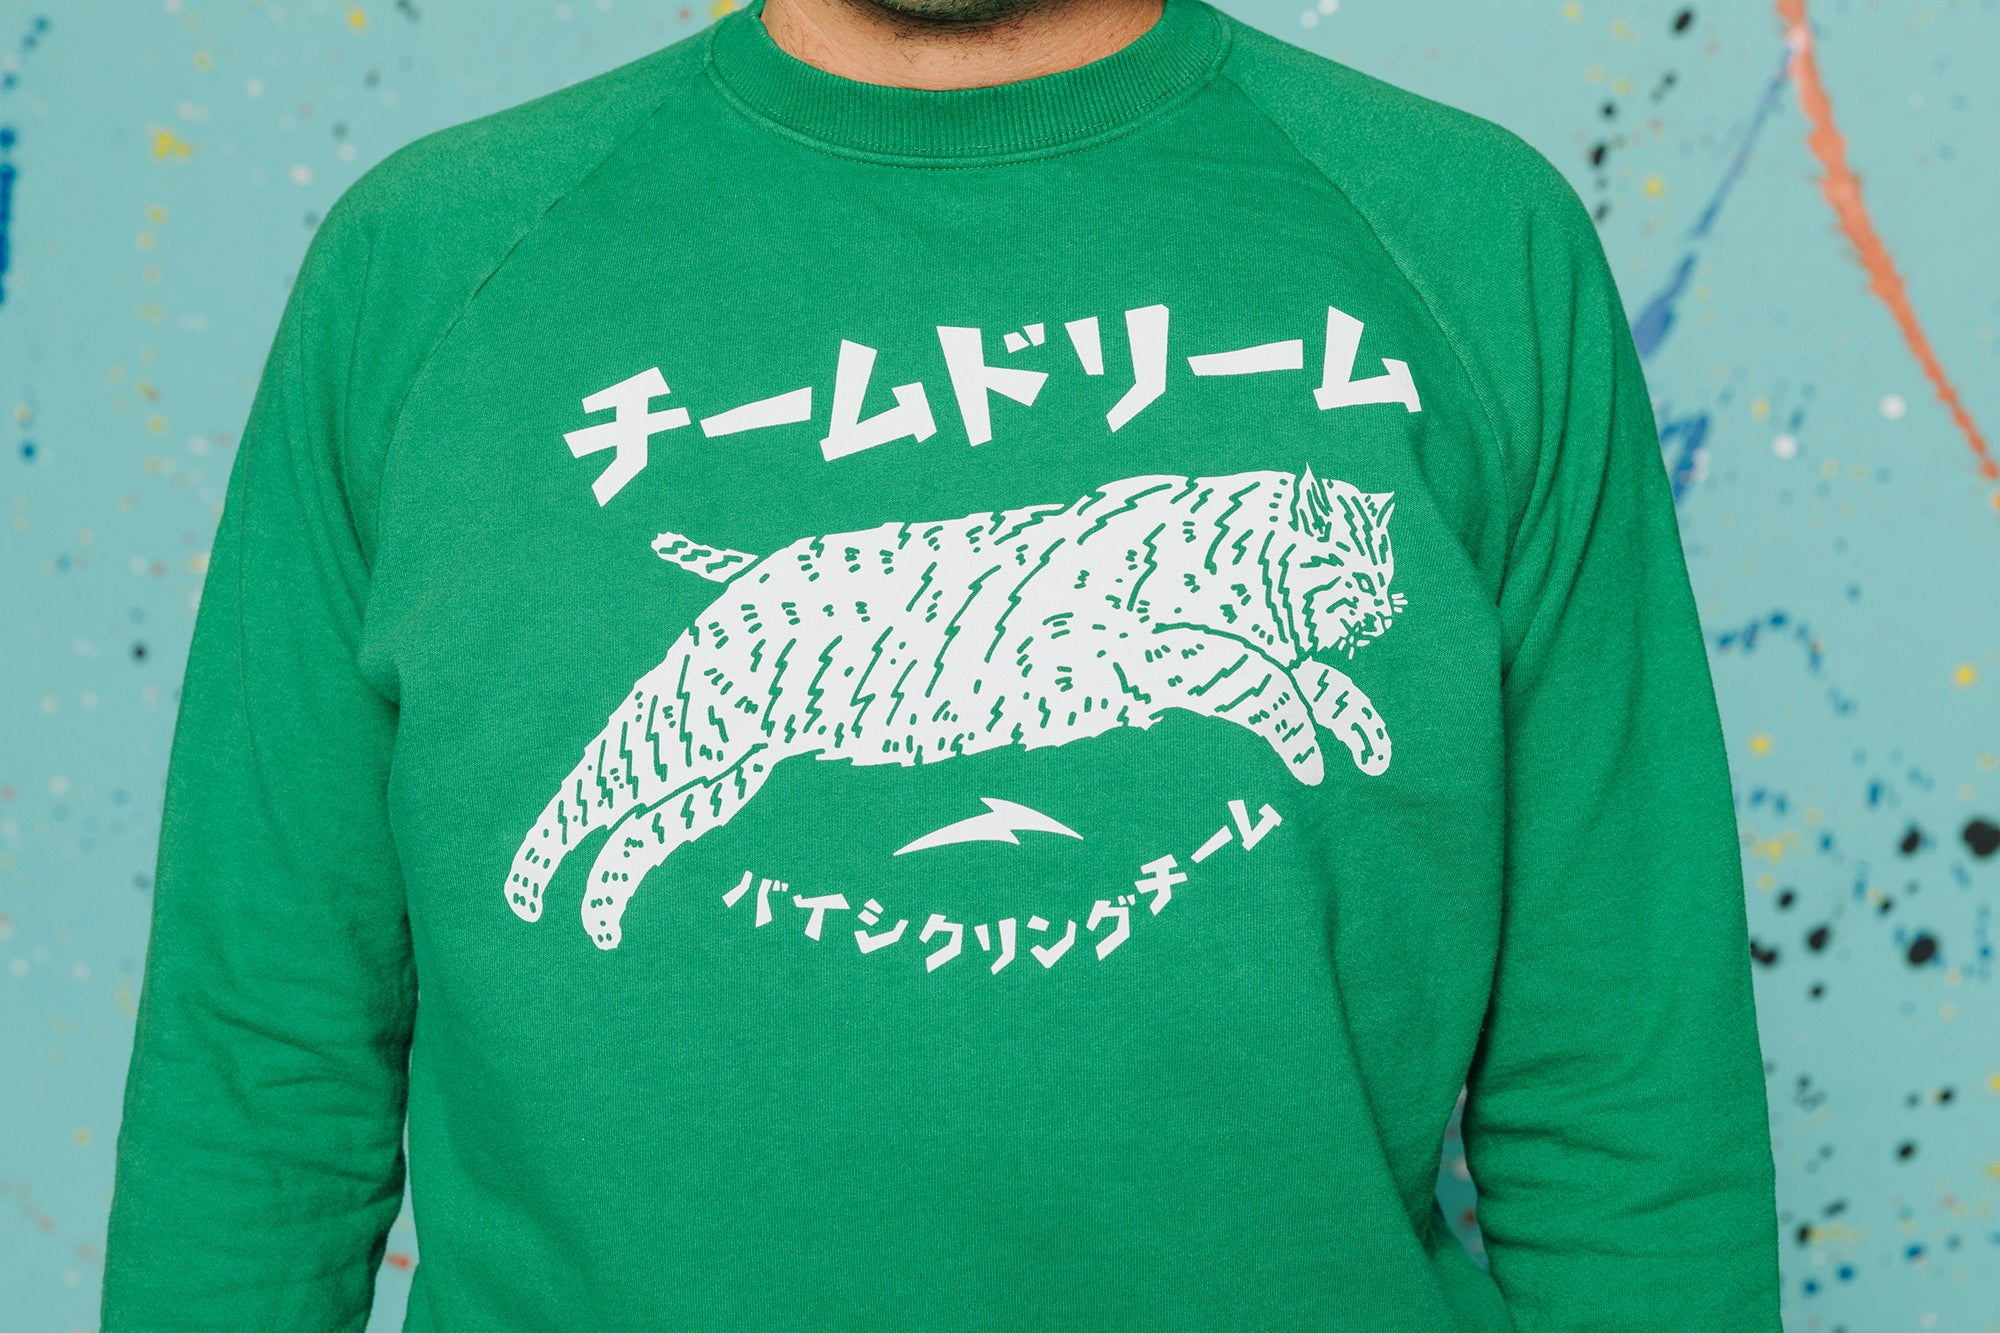 Kelly Green Japan Lightweight Raglan Slim Fit